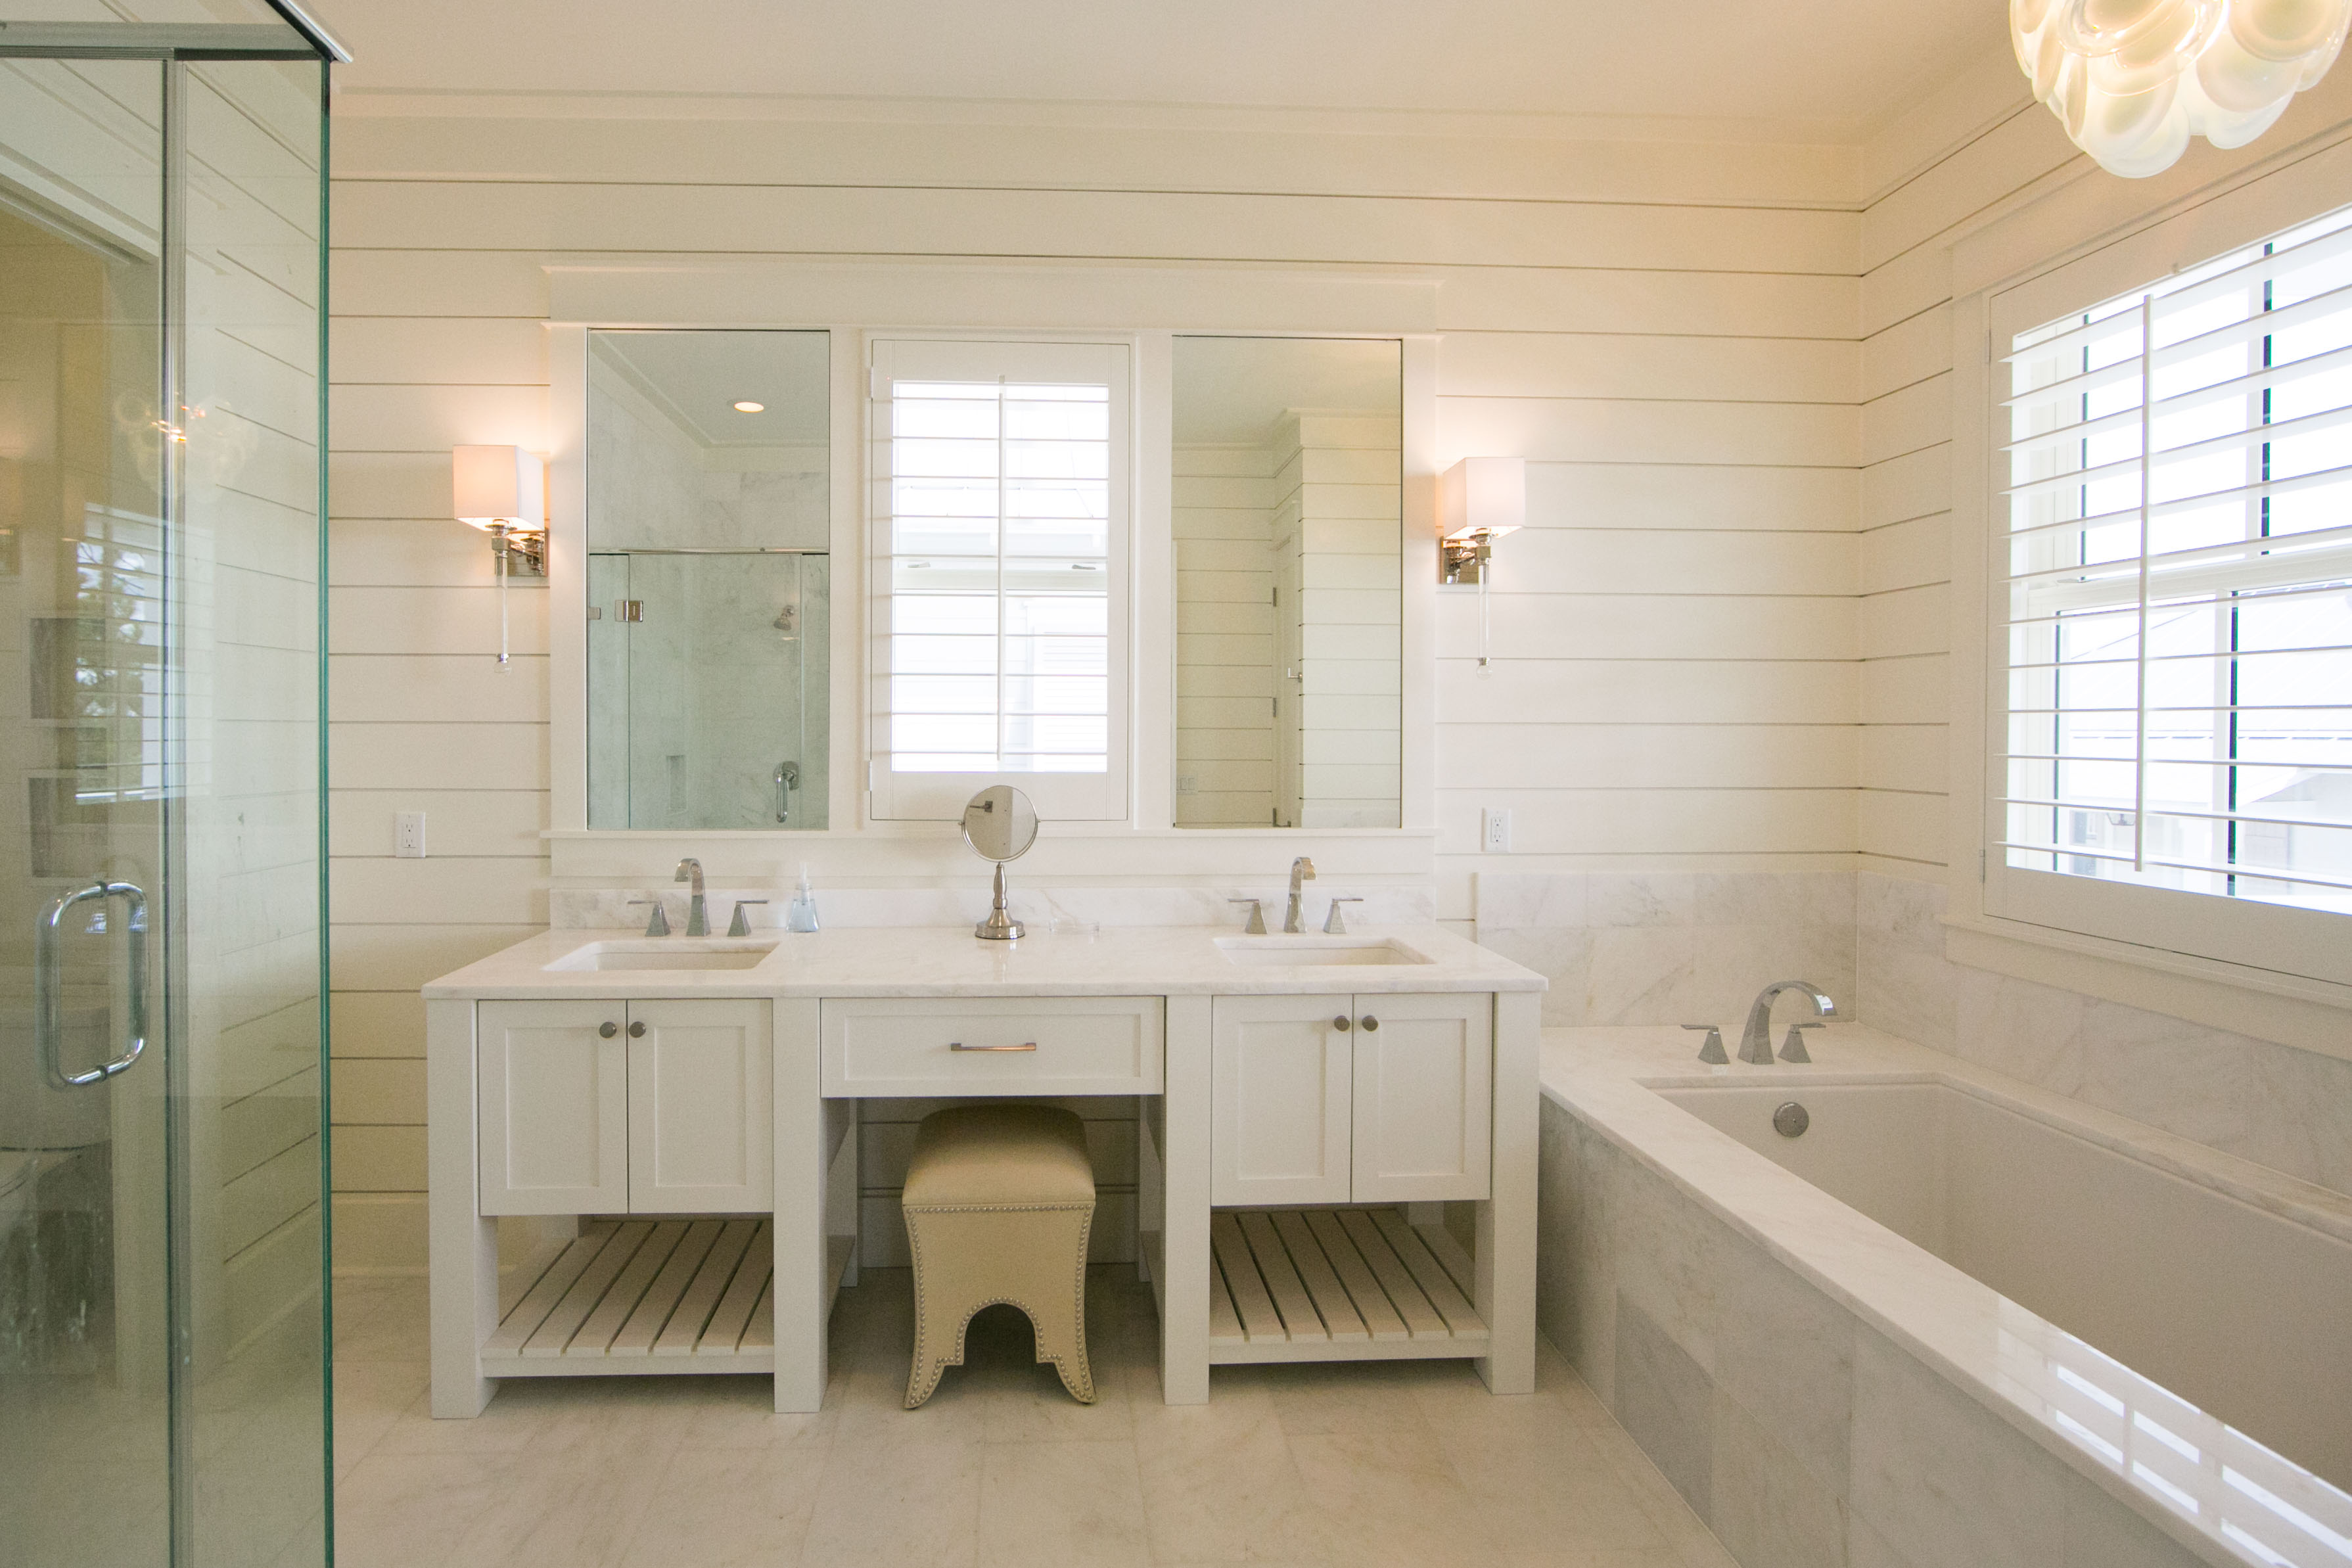 Main Master Bathroom, Double Vanities, Soaker Tub and Stand Up Shower